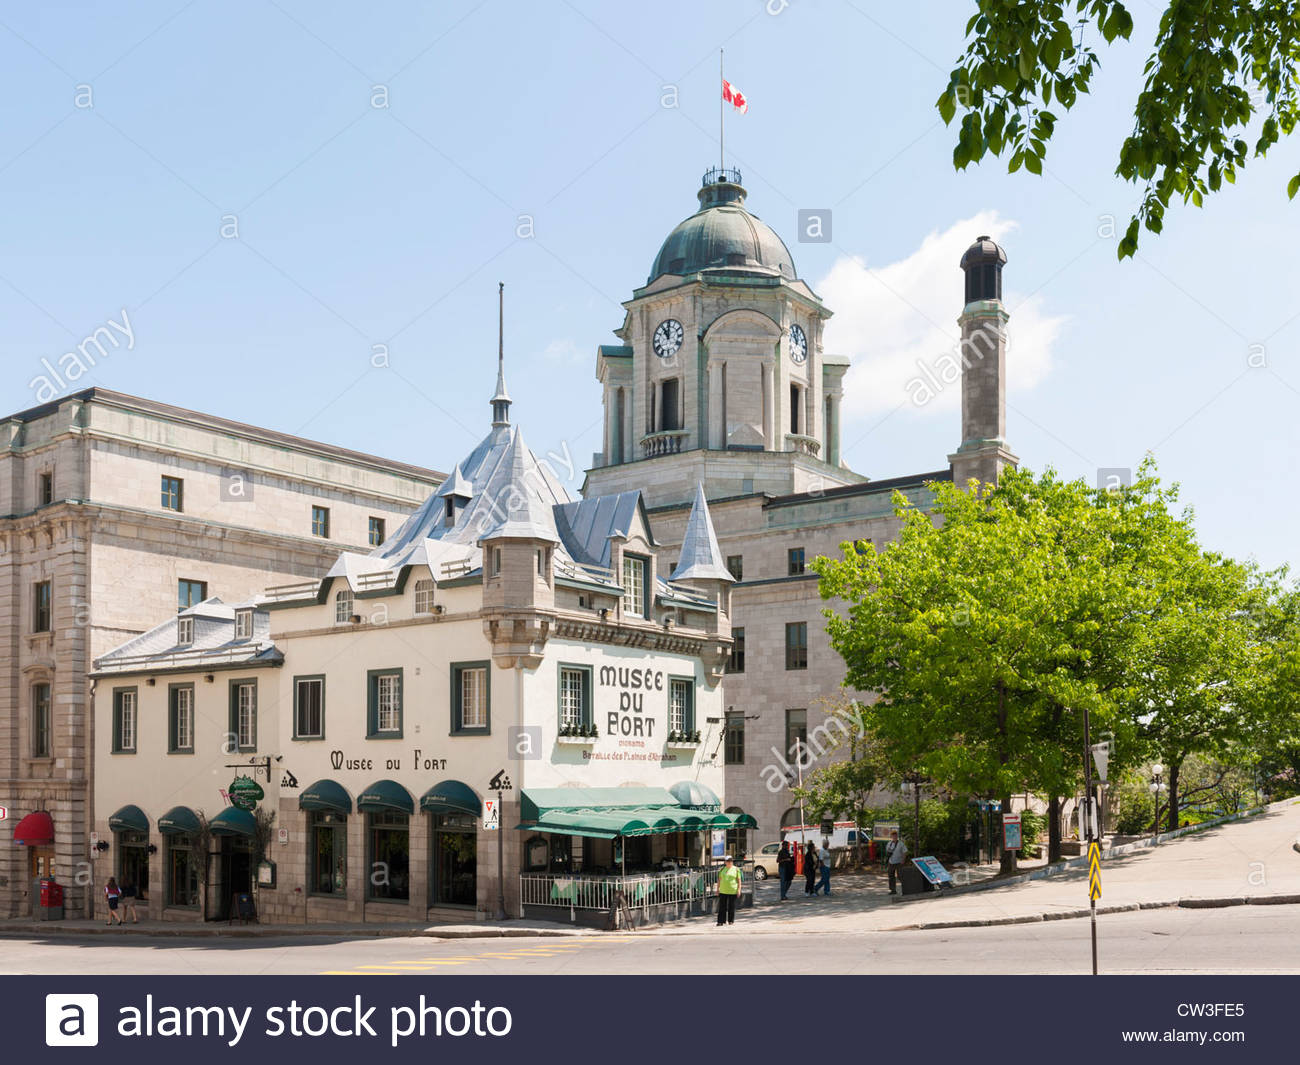 Wolfe Monument Quebec City, Musée du Fort, Quebec City Stock Photo, Royalty Free Image ...